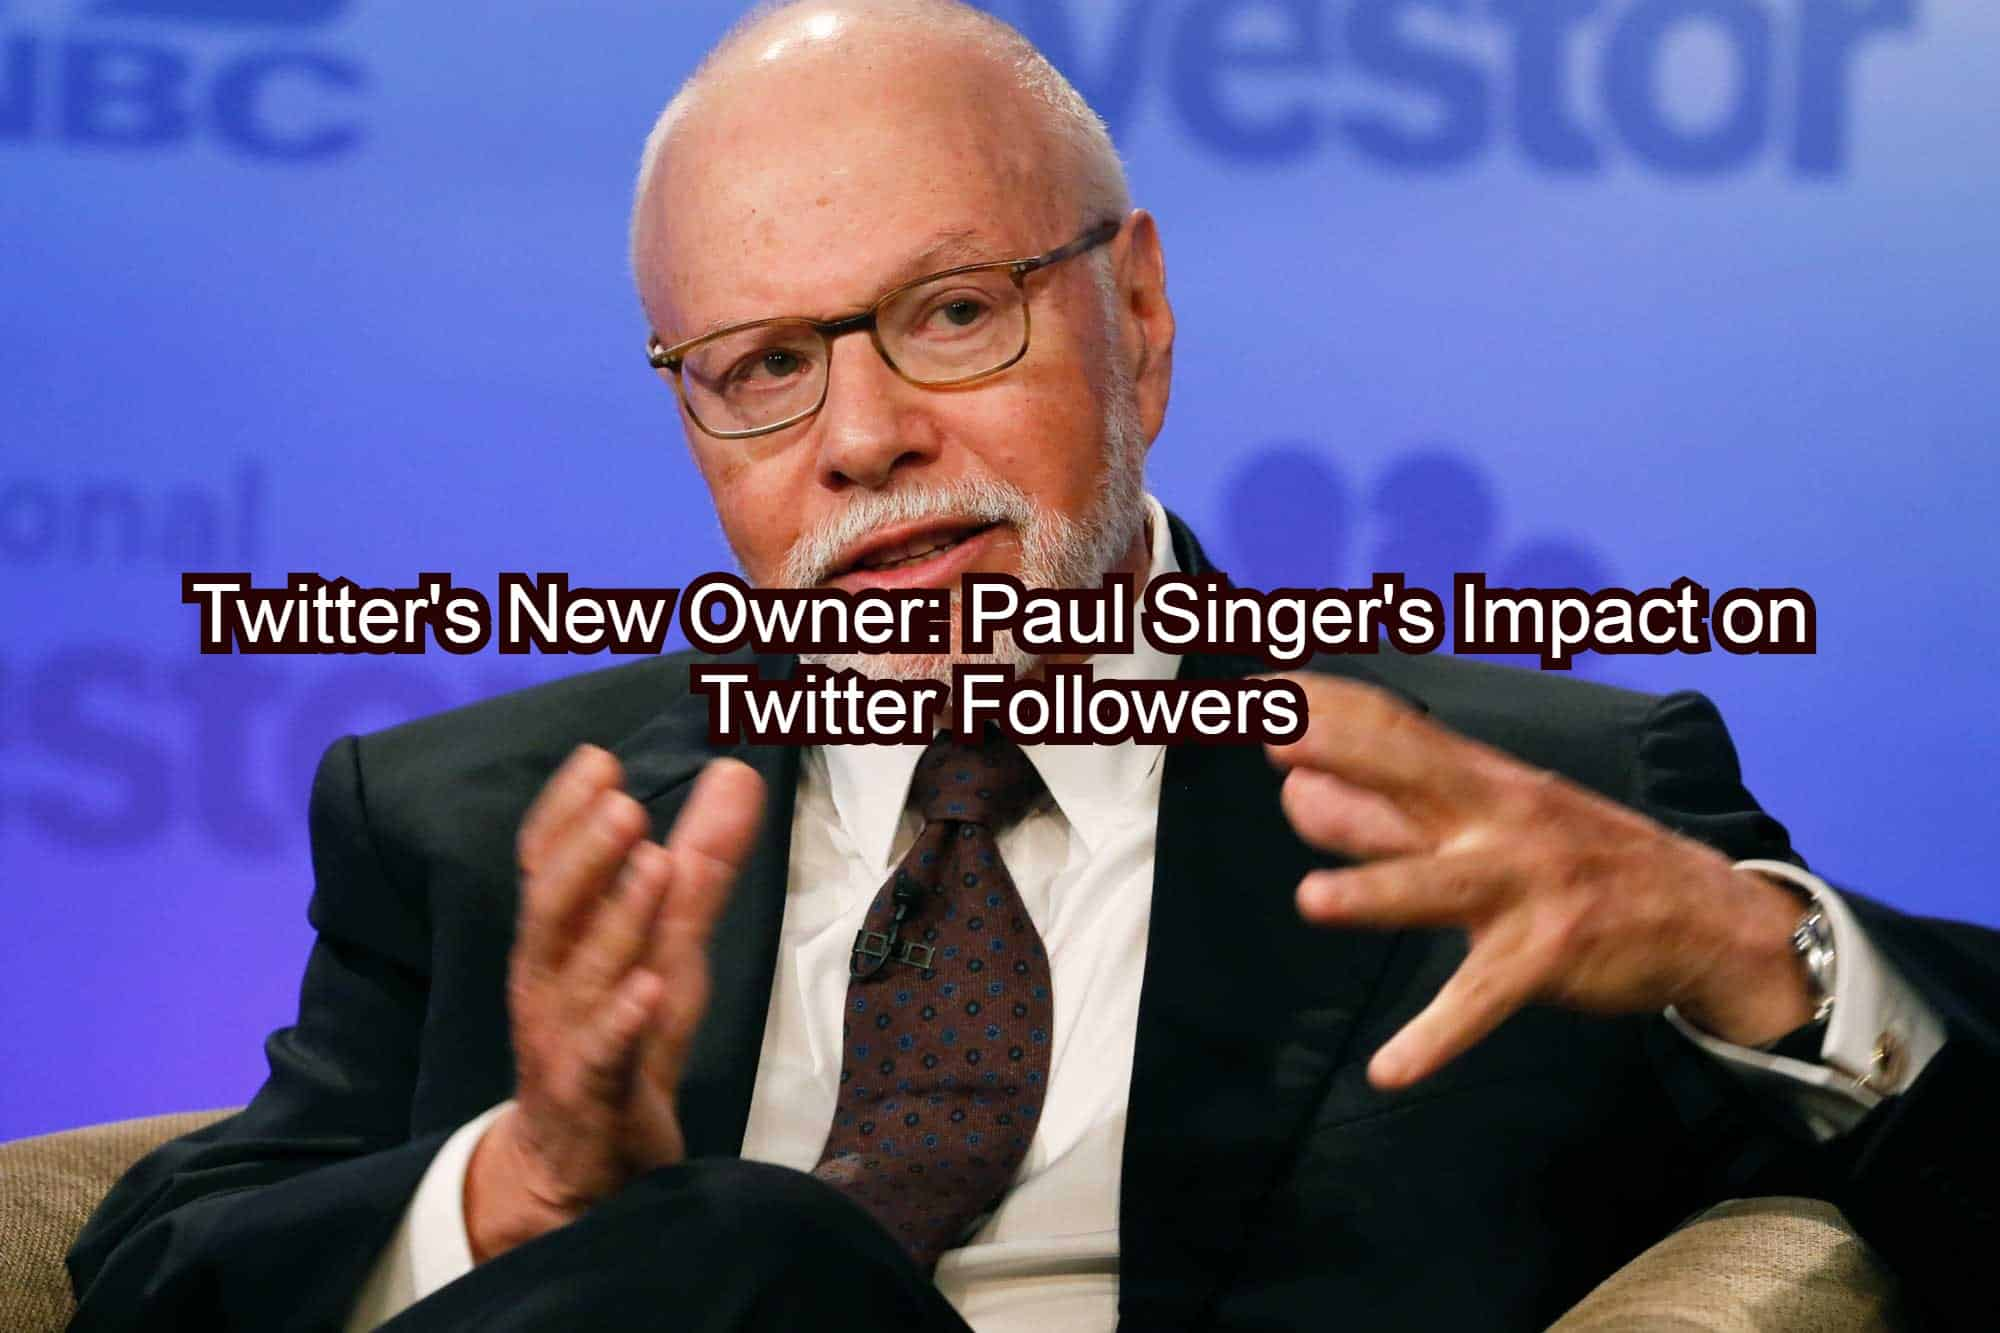 Twitter's New Owner Paul Singers Impact on Twitter Followers